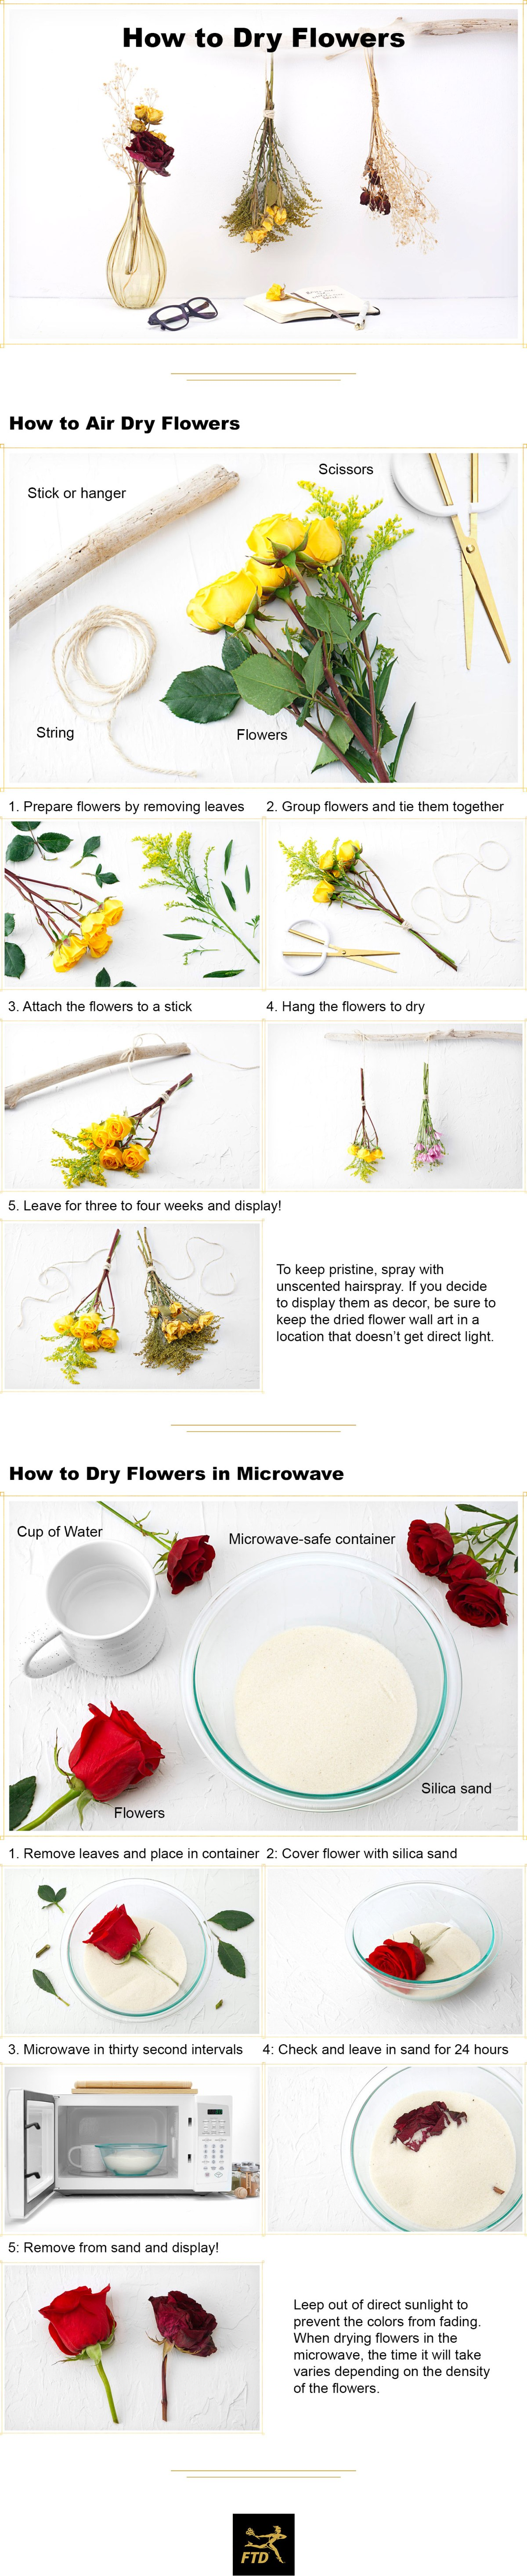 How to Dry Flowers: 2 Simple Ways + Decor Ideas [Visuals] | ecogreenlove